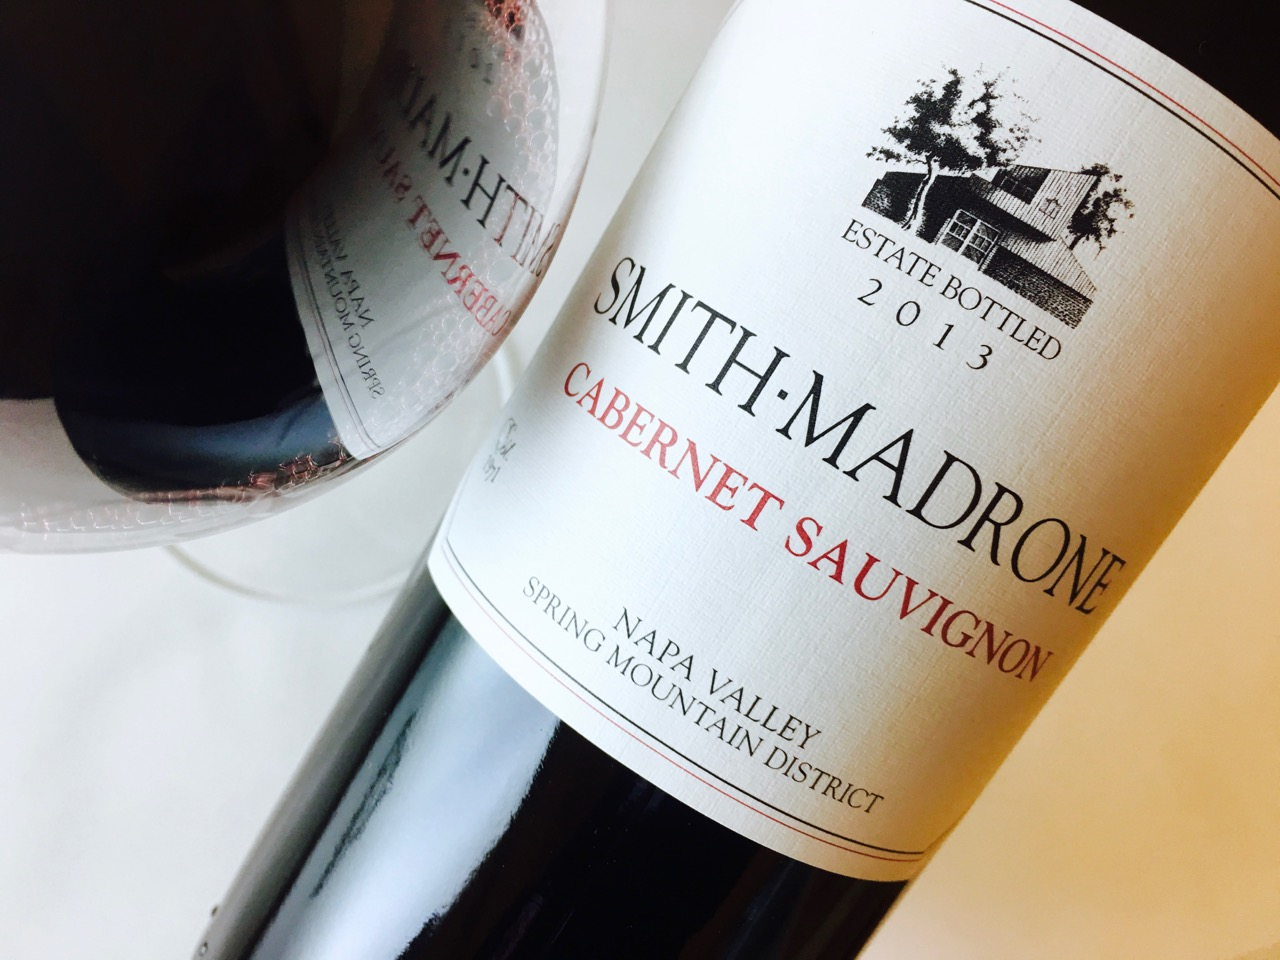 2013 Smith-Madrone Cabernet Sauvignon Spring Mountain District Napa Valley